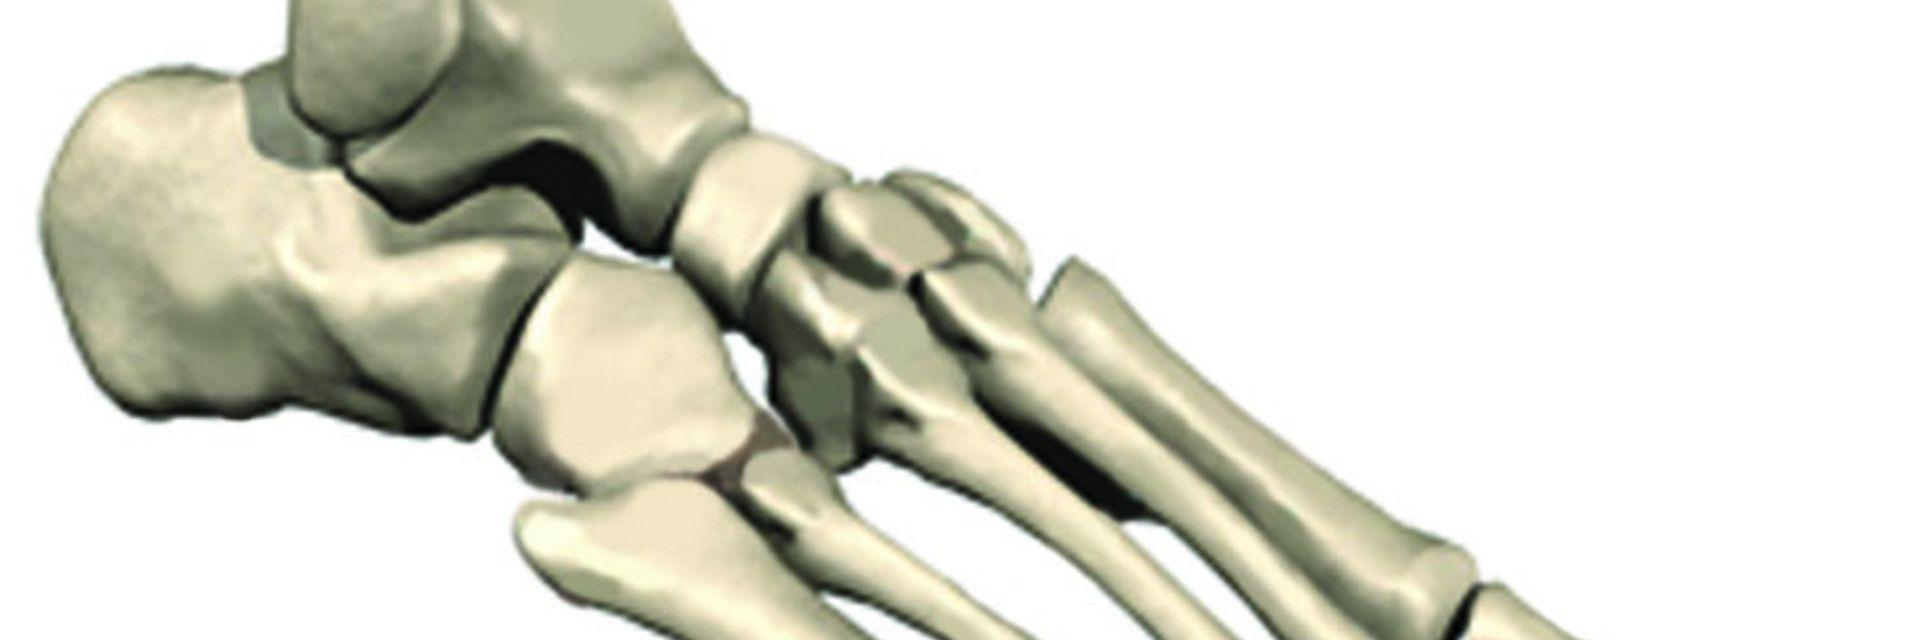 Find a Total Ankle Replacement Surgeon in Philadelphia